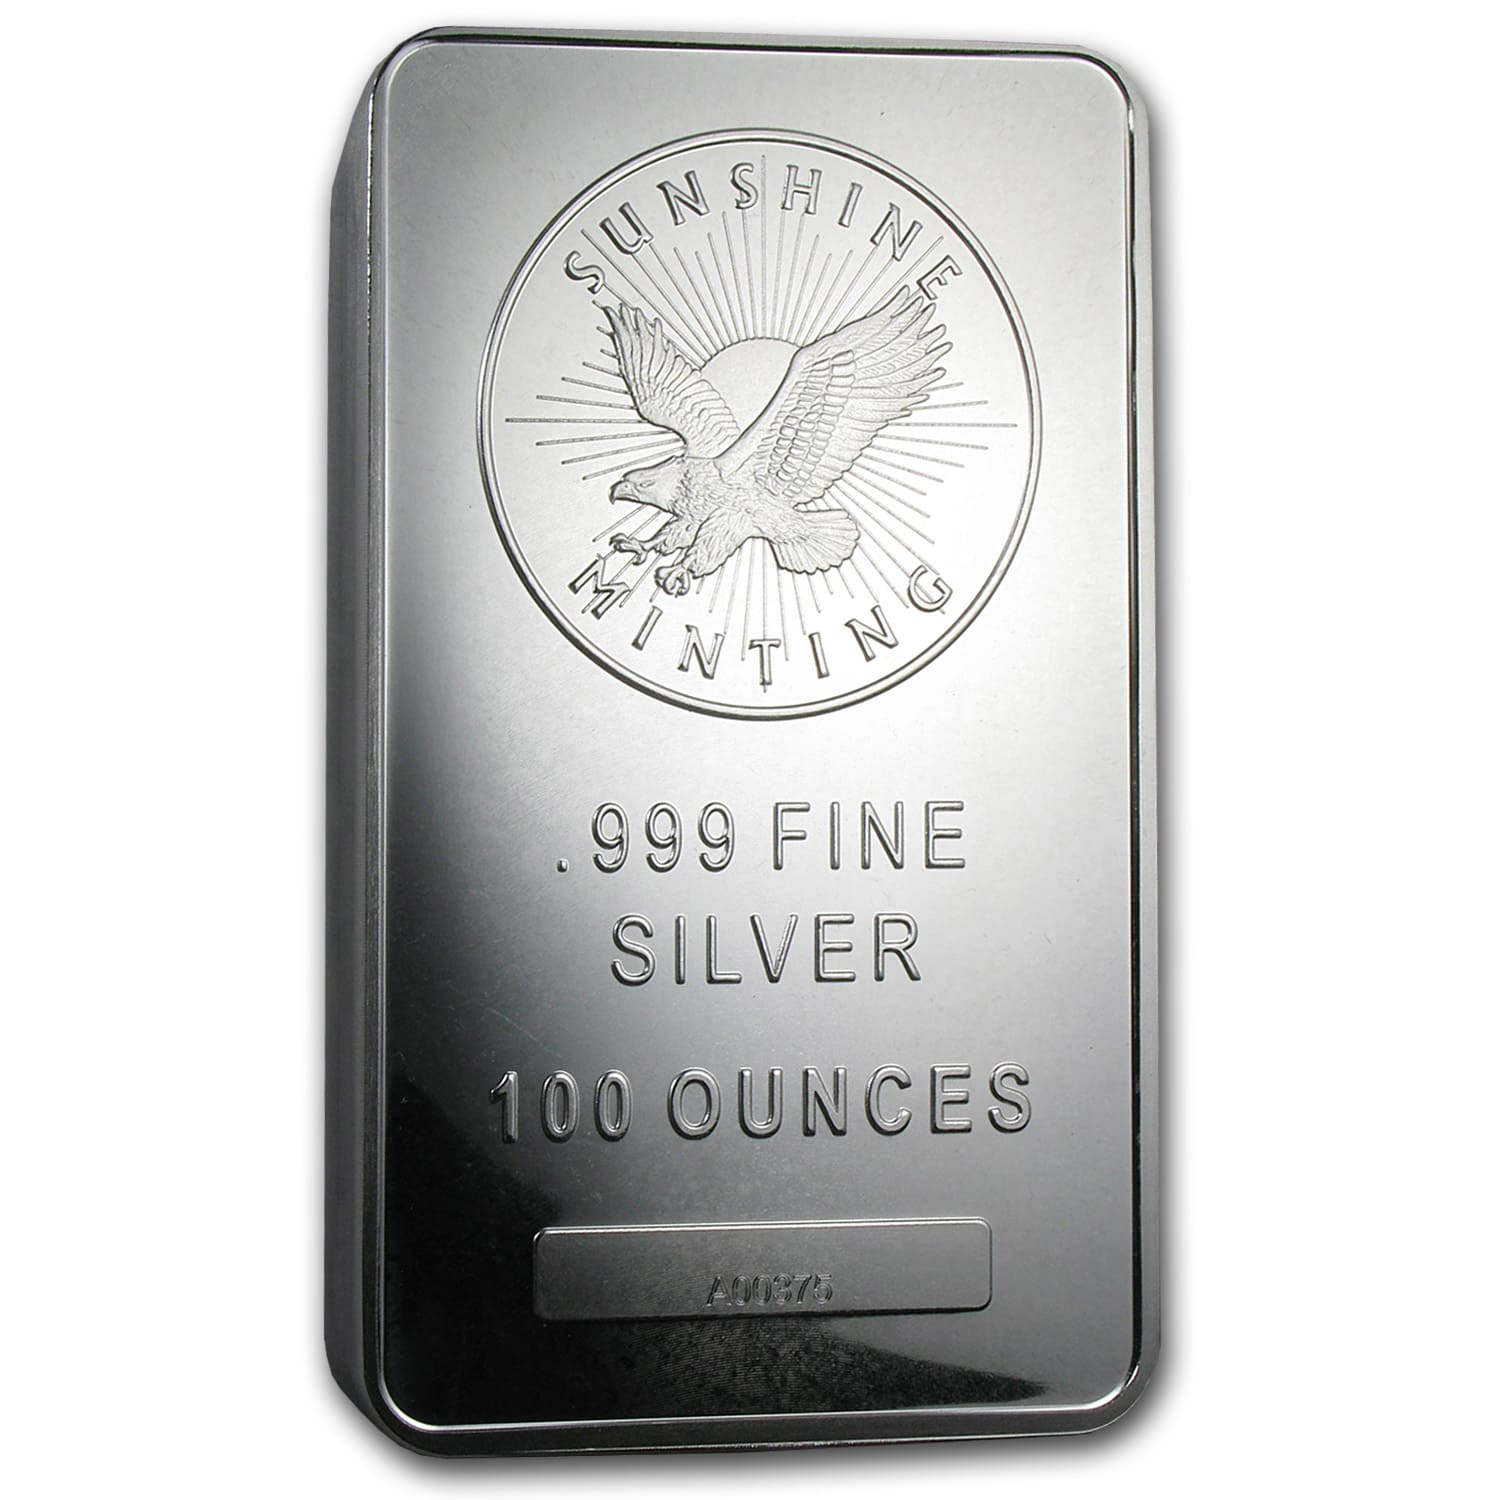 100 oz Silver Bar - Sunshine (V2)